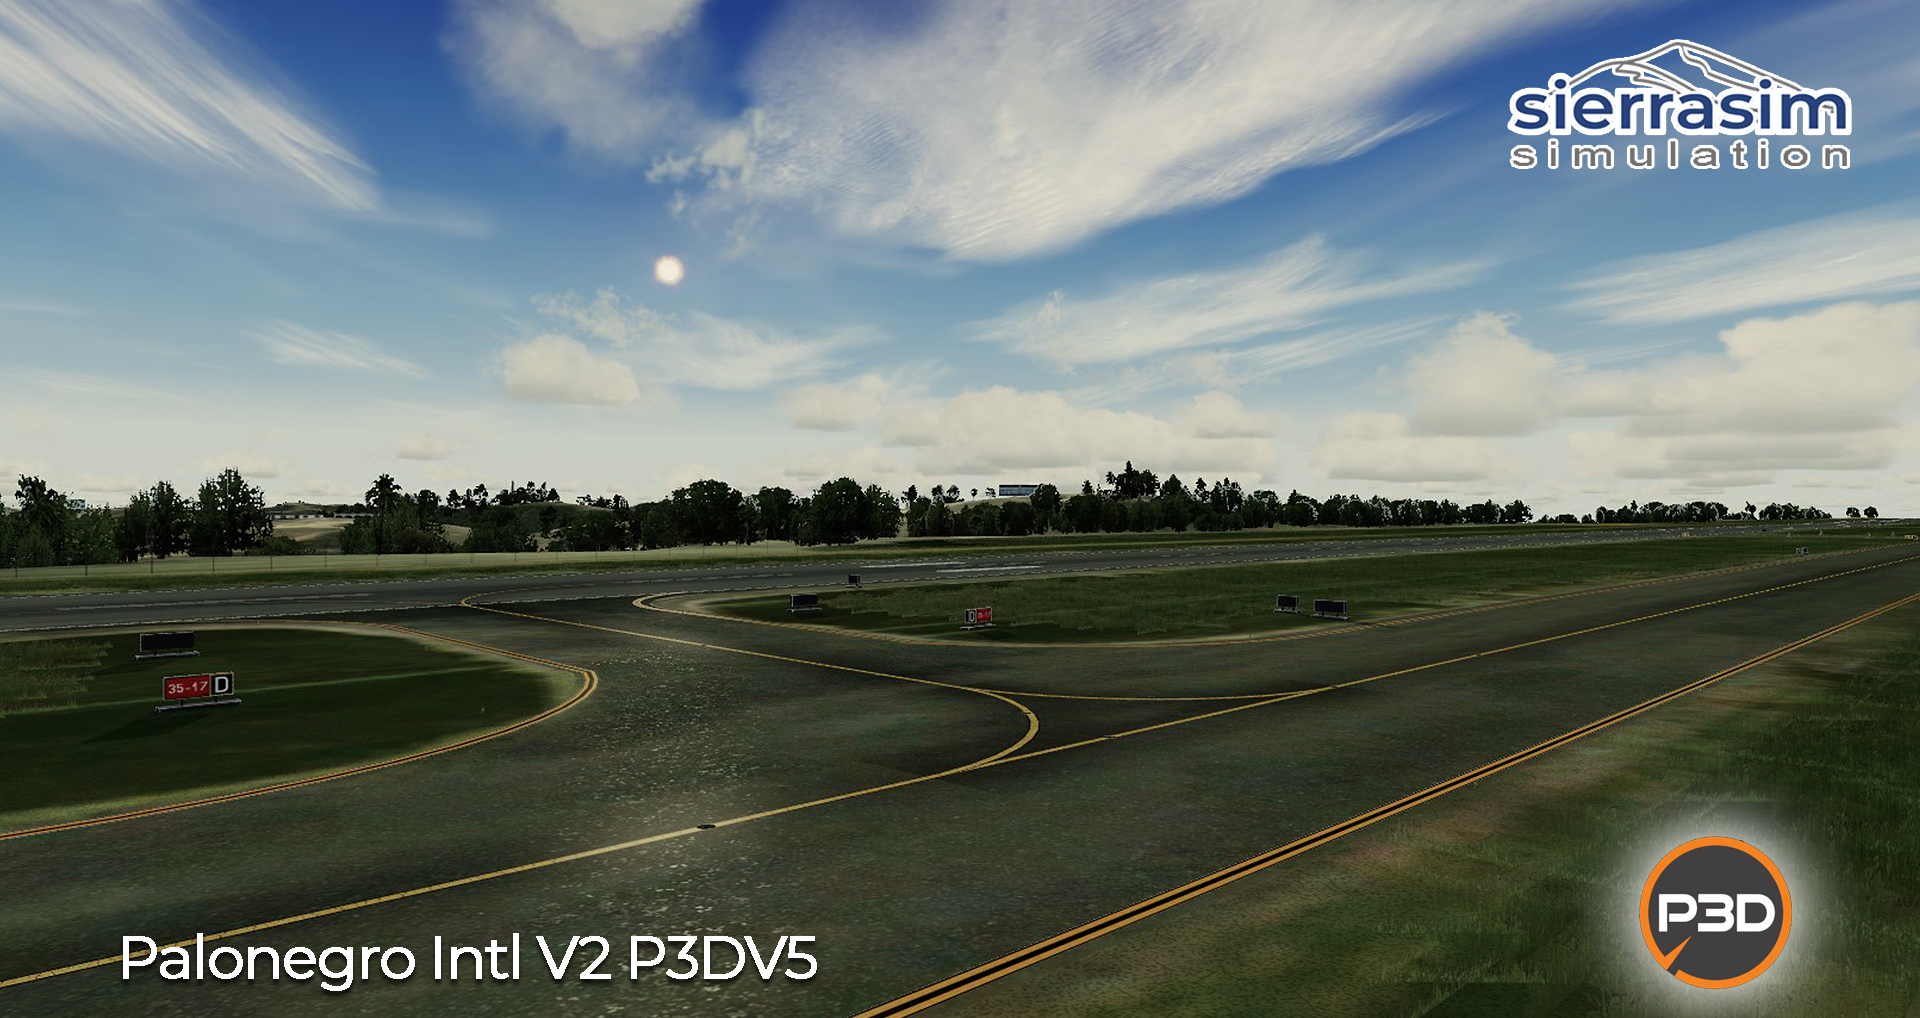 SIERRASIM SIMULATION - SKBG PALONEGRO INTERNATIONAL AIRPORT V2 P3D